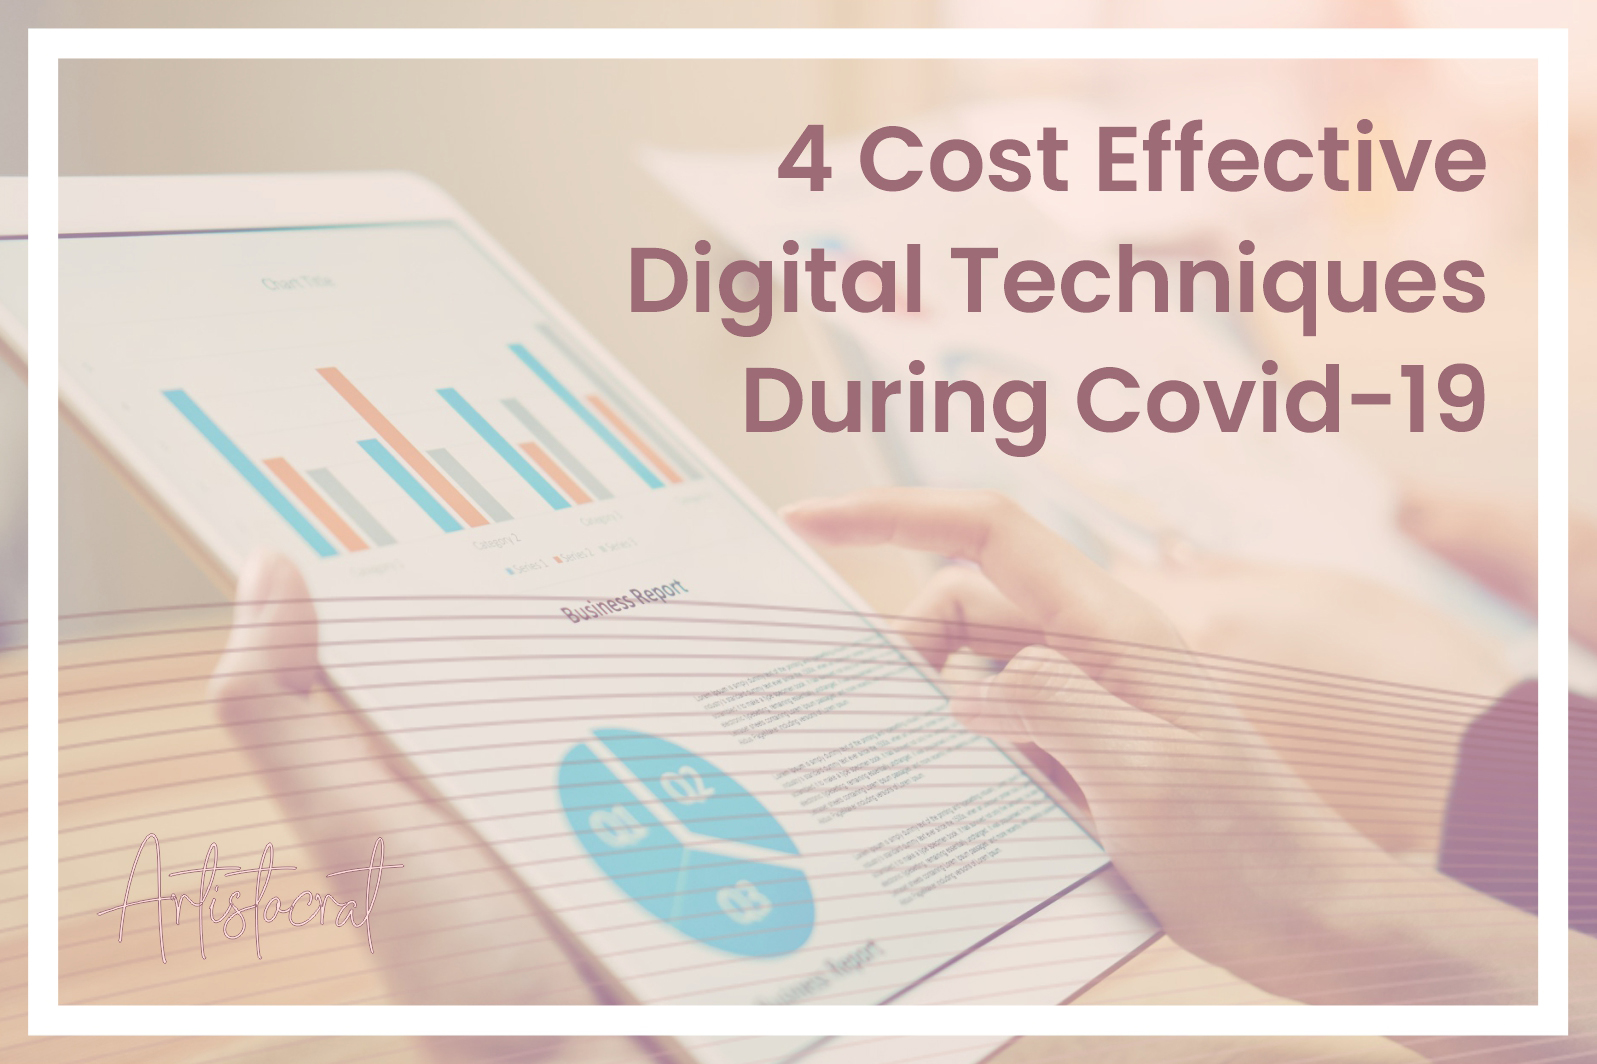 Cost-Effective-Digital-Techniques-During-Covid-19